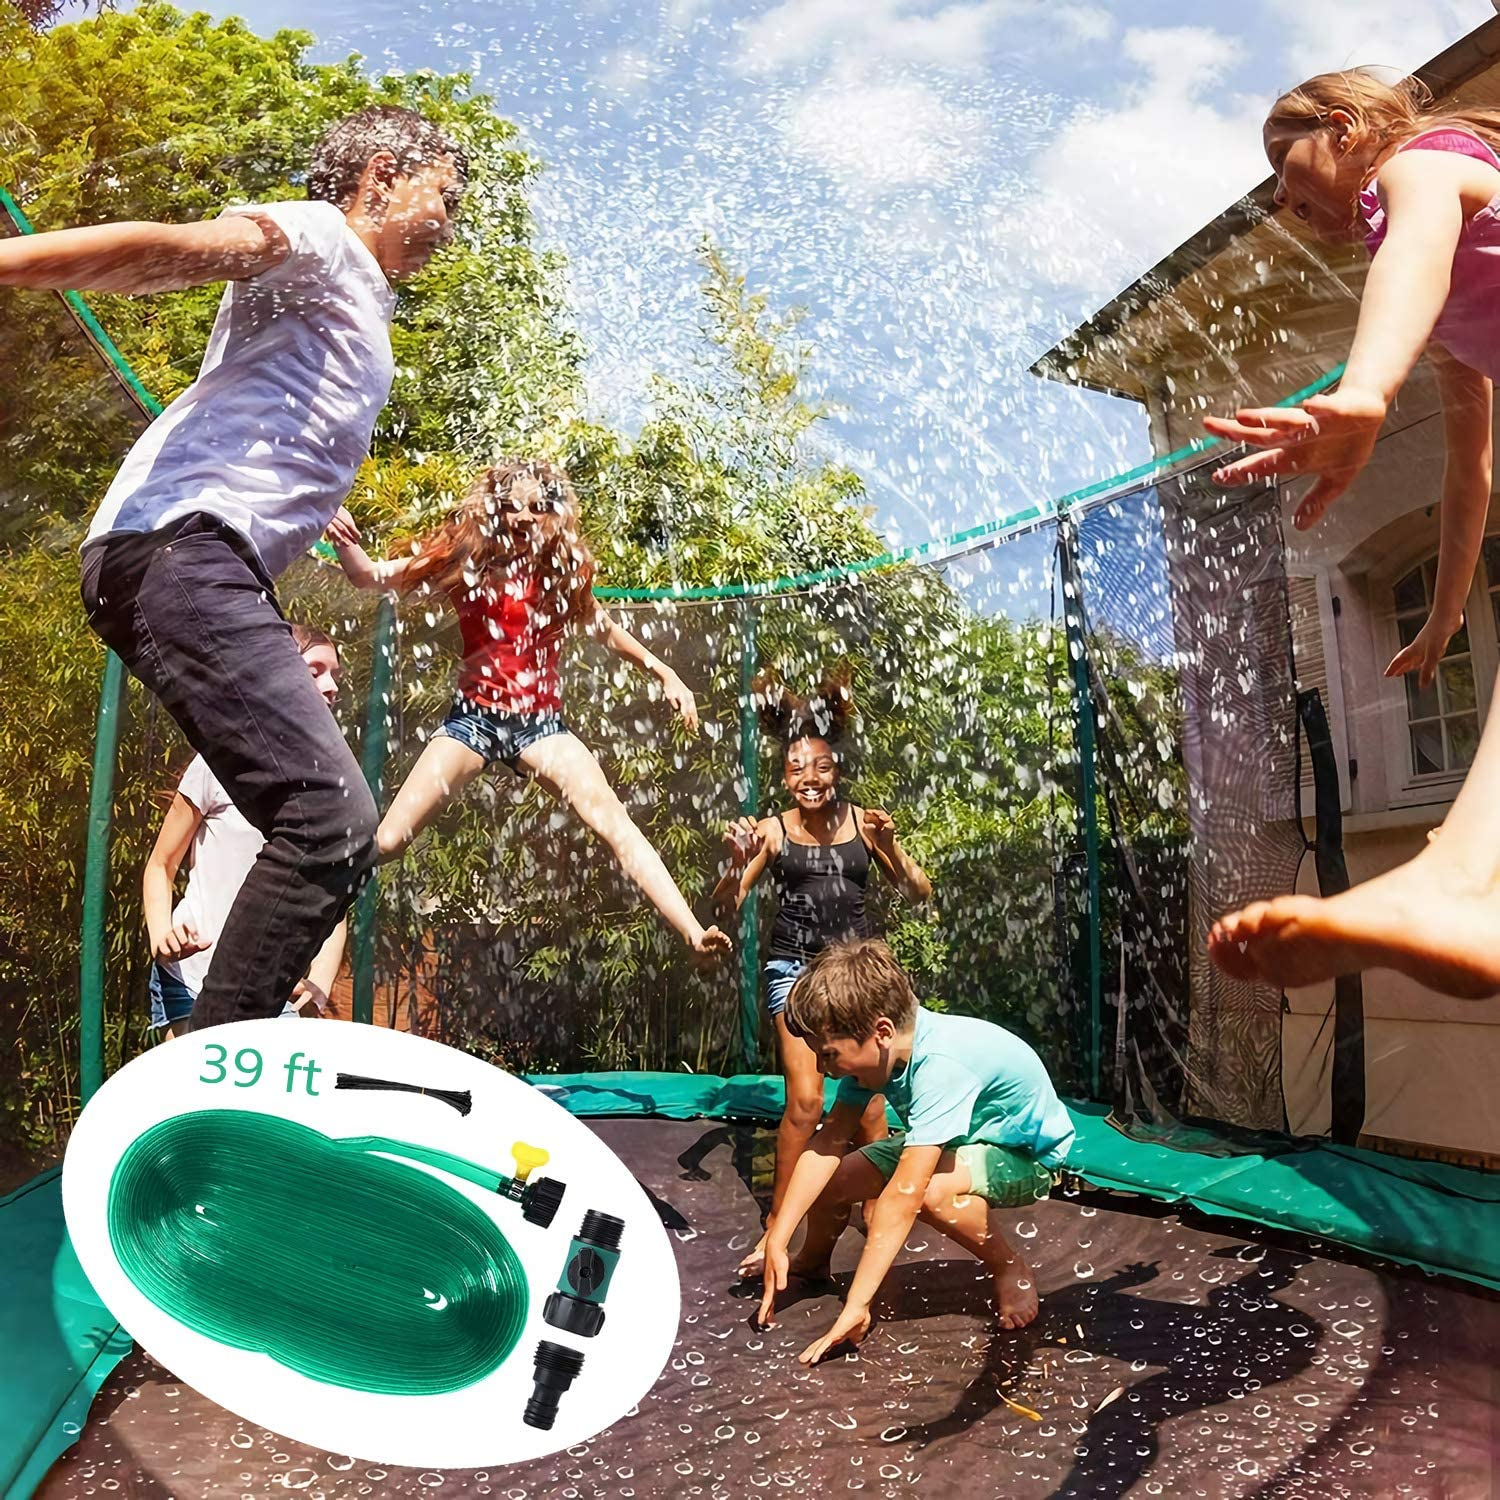 Free Amazon Promo Code 2020 for Trampoline Sprinkler